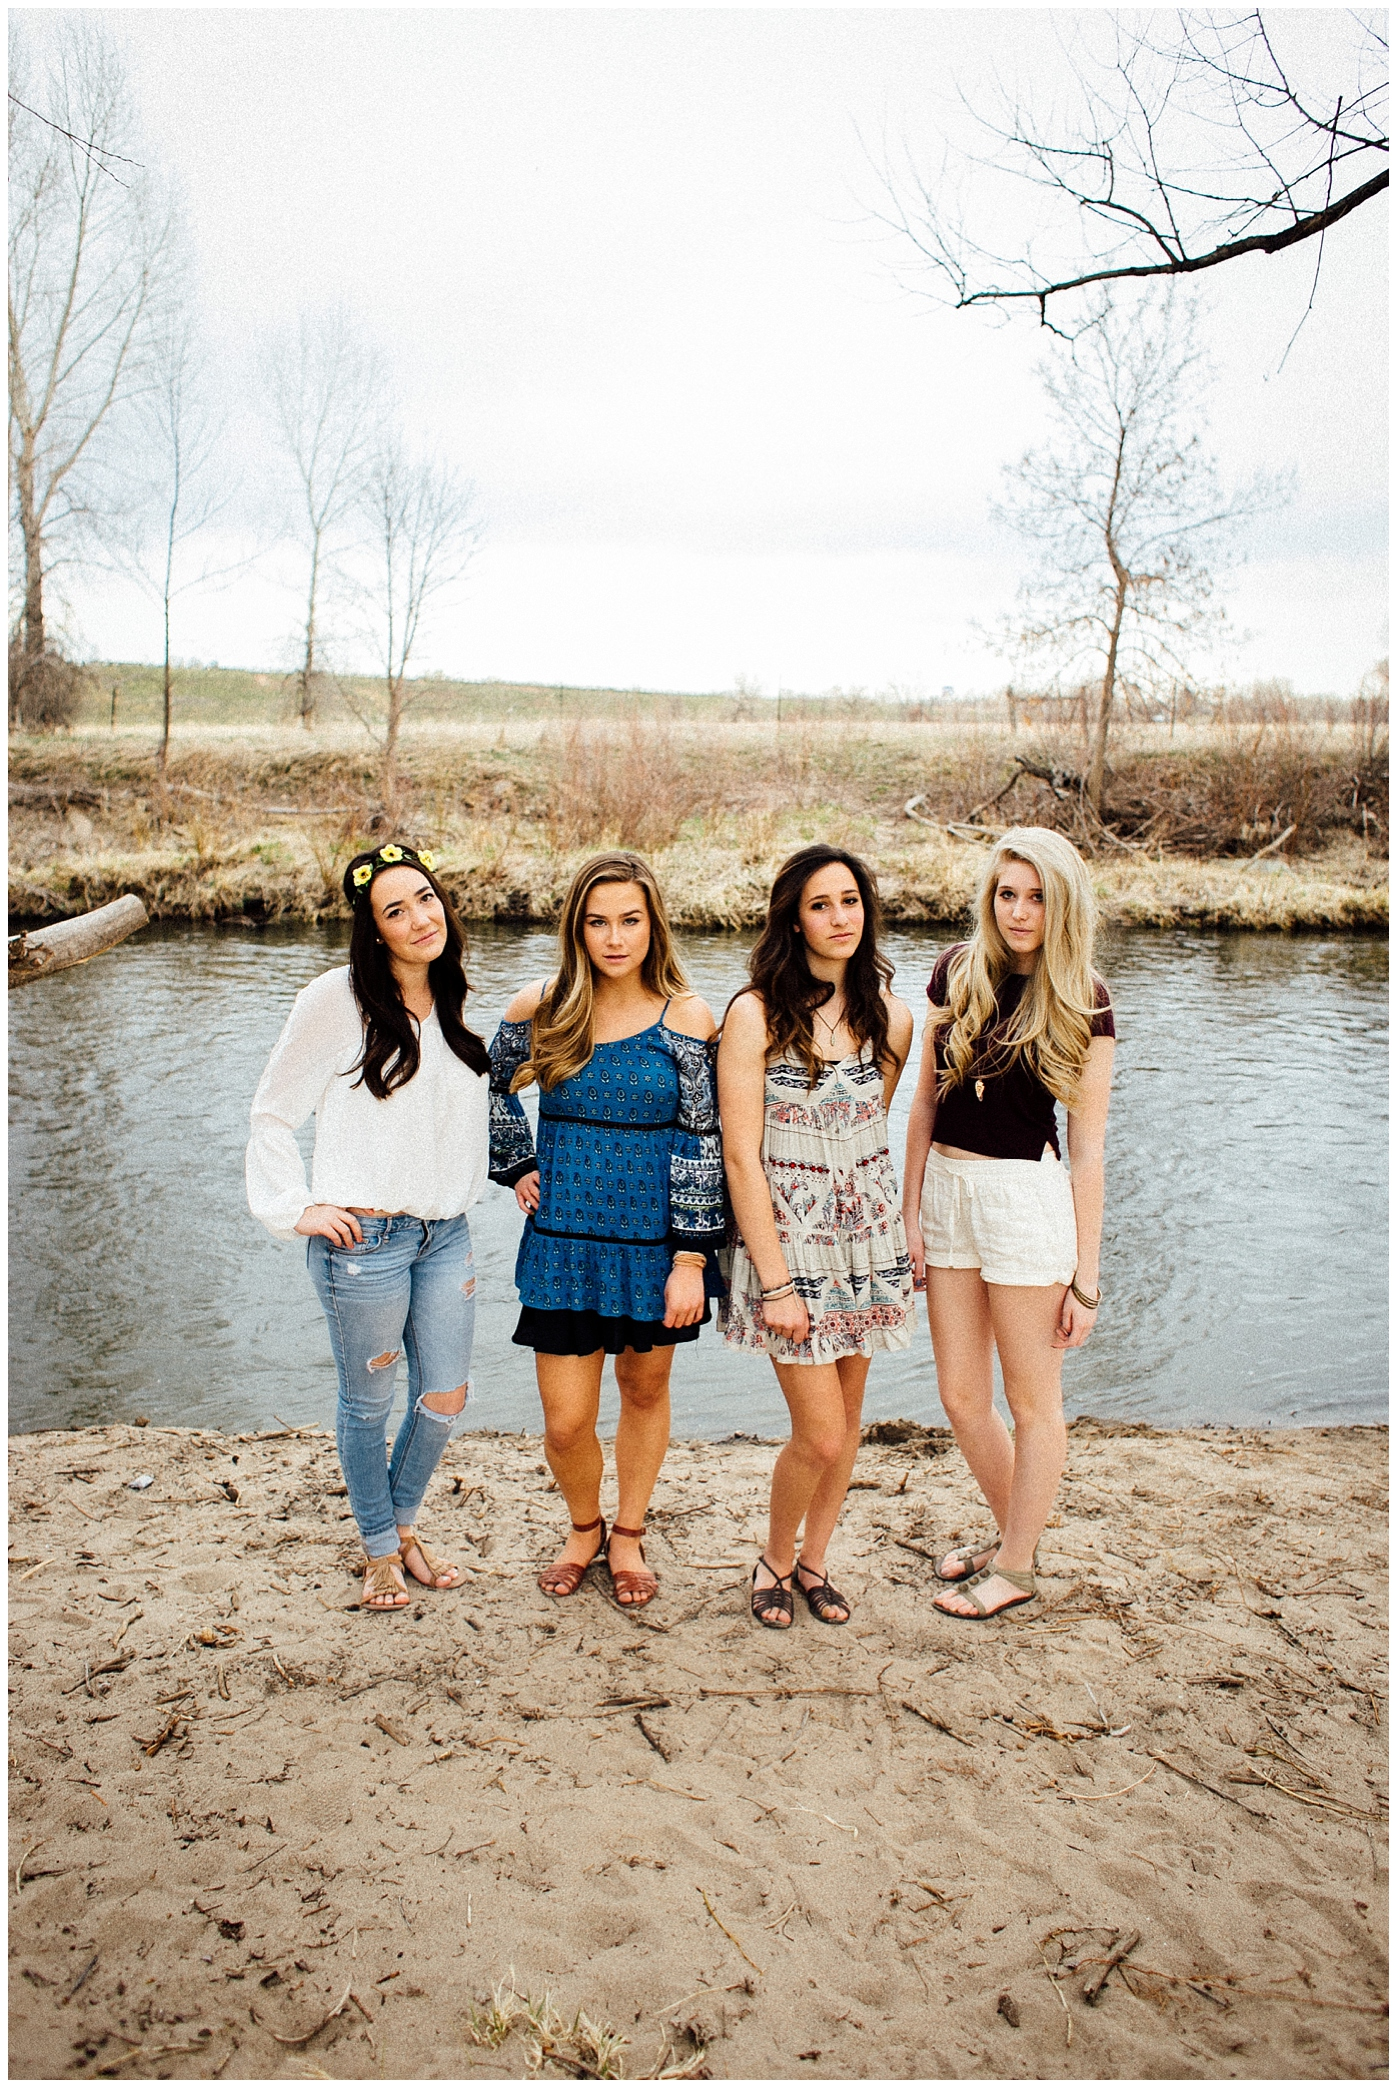 20160328BohoGlamping2017SeniorReps015_fort-collins-senior-photographer.jpg